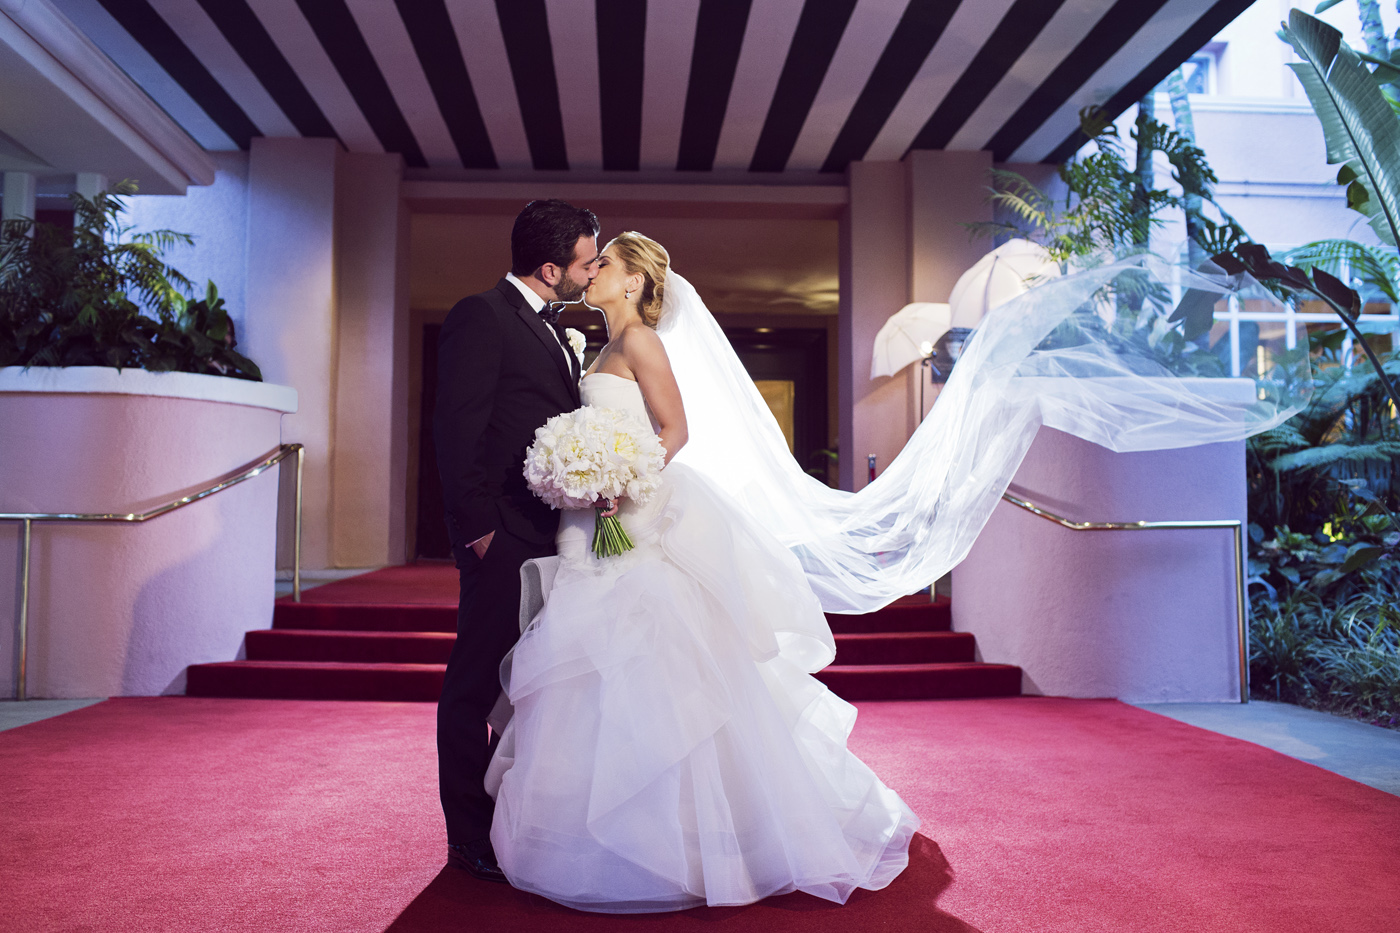 082DukePhotography_DukeImages_weddings_losangeles.jpg